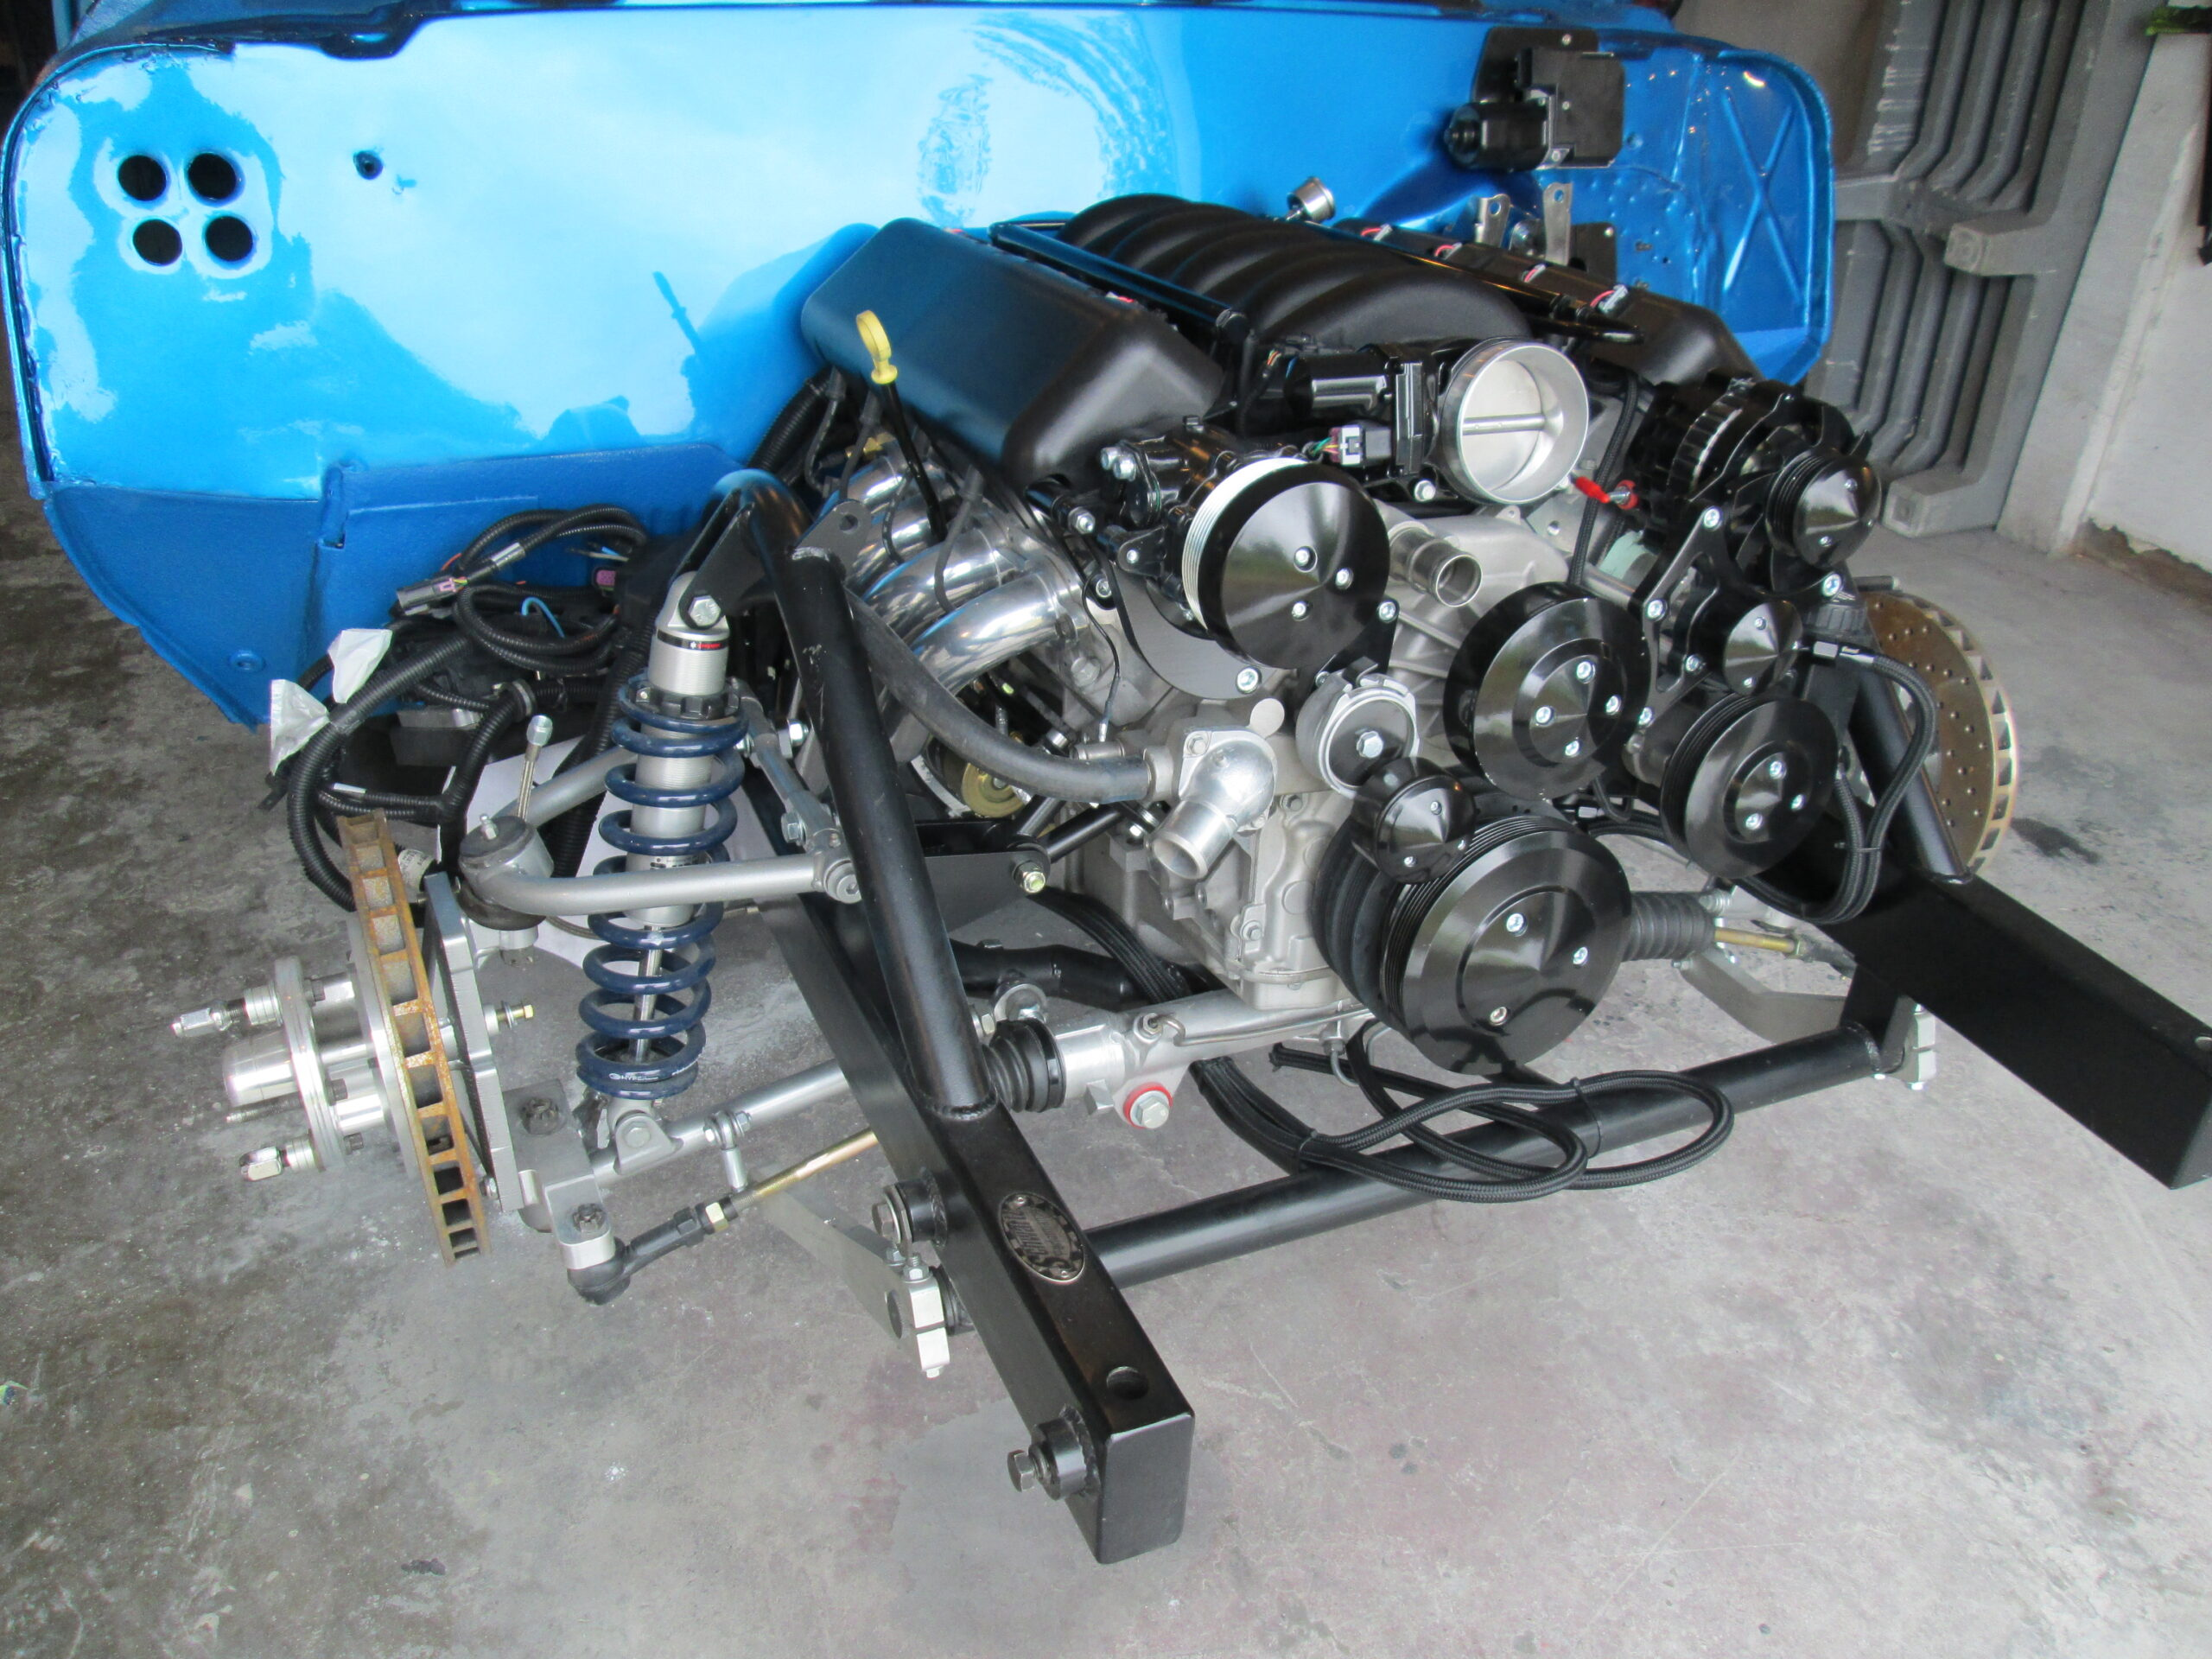 1966 CHEVELLE SS engine